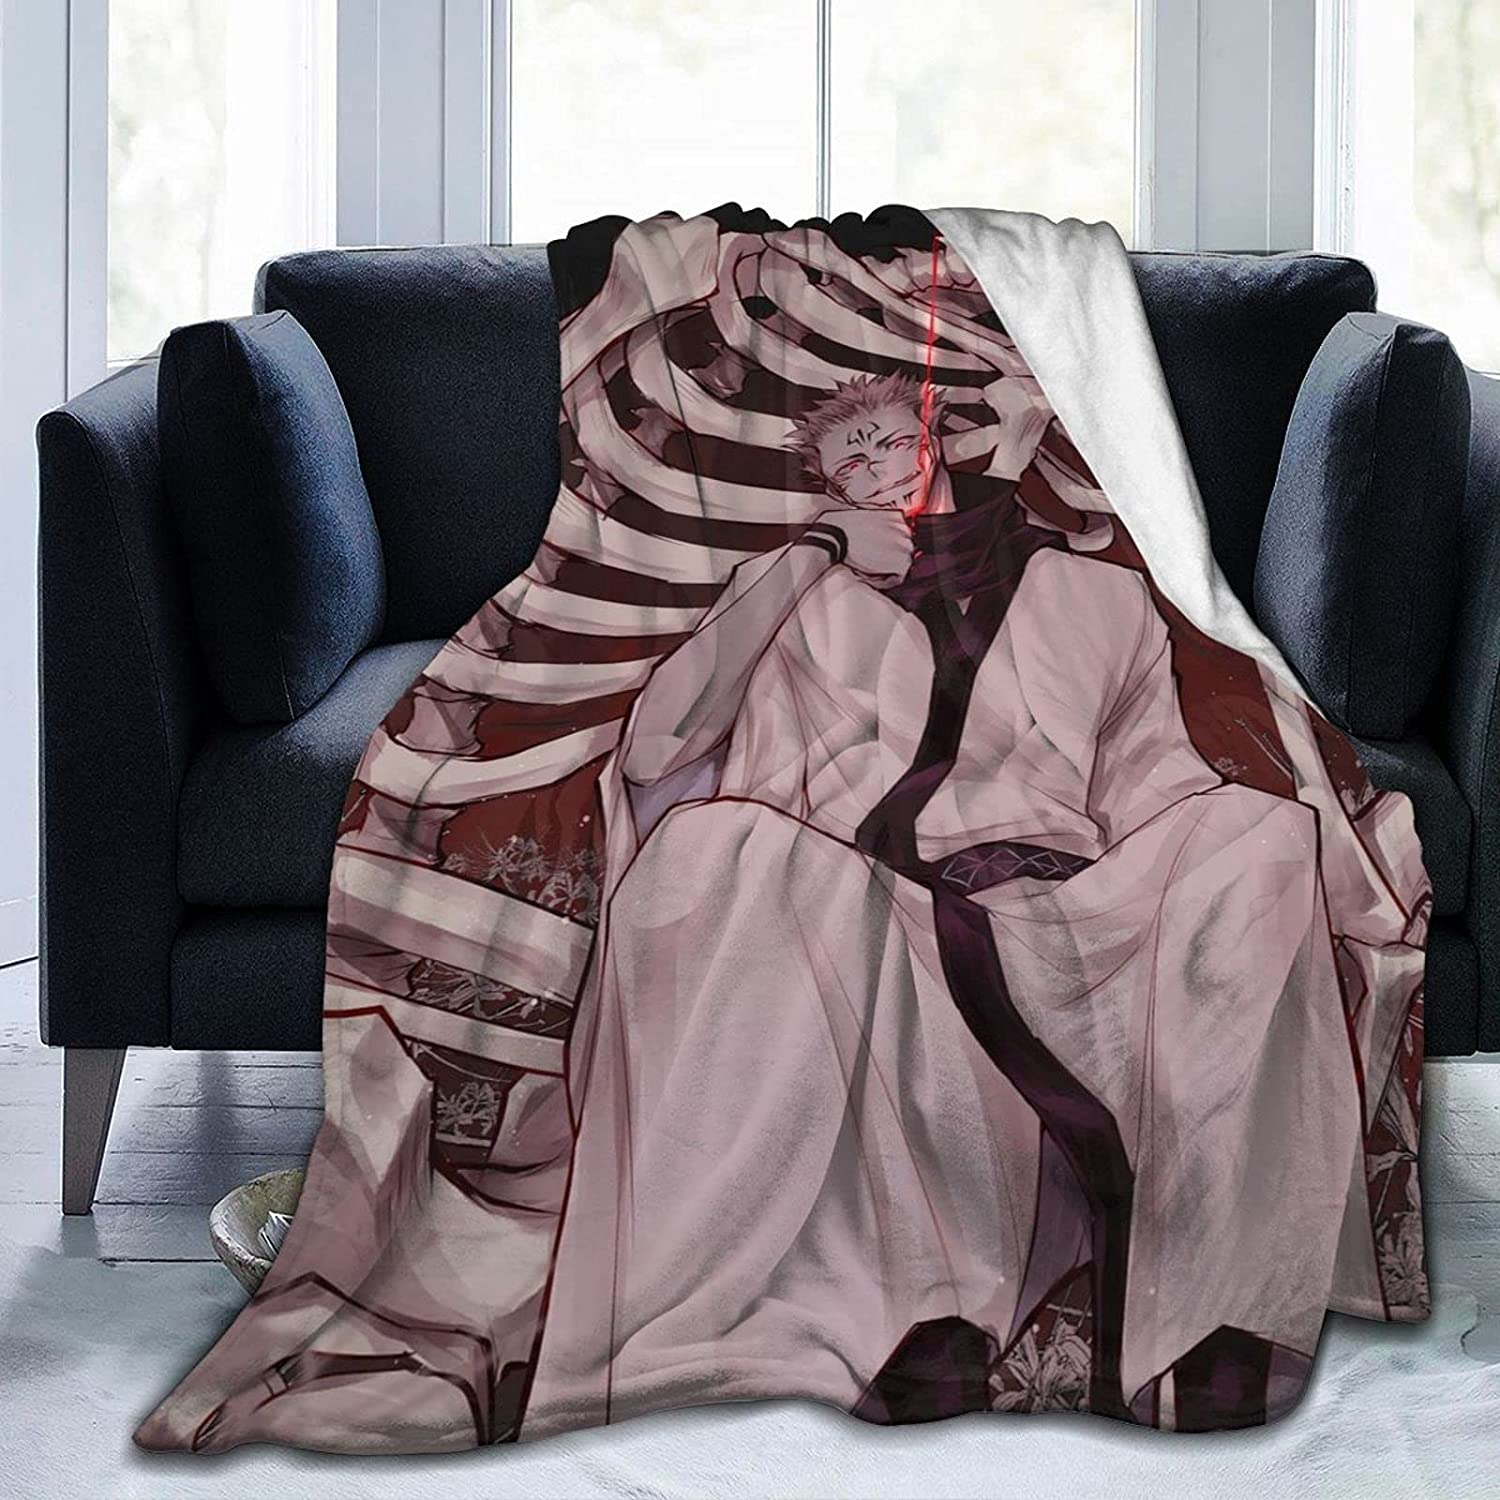 Ysuouht Jujutsu Kaisen Blanket Ultra Soft Throw Limited time trial price Bedroom Selling rankings